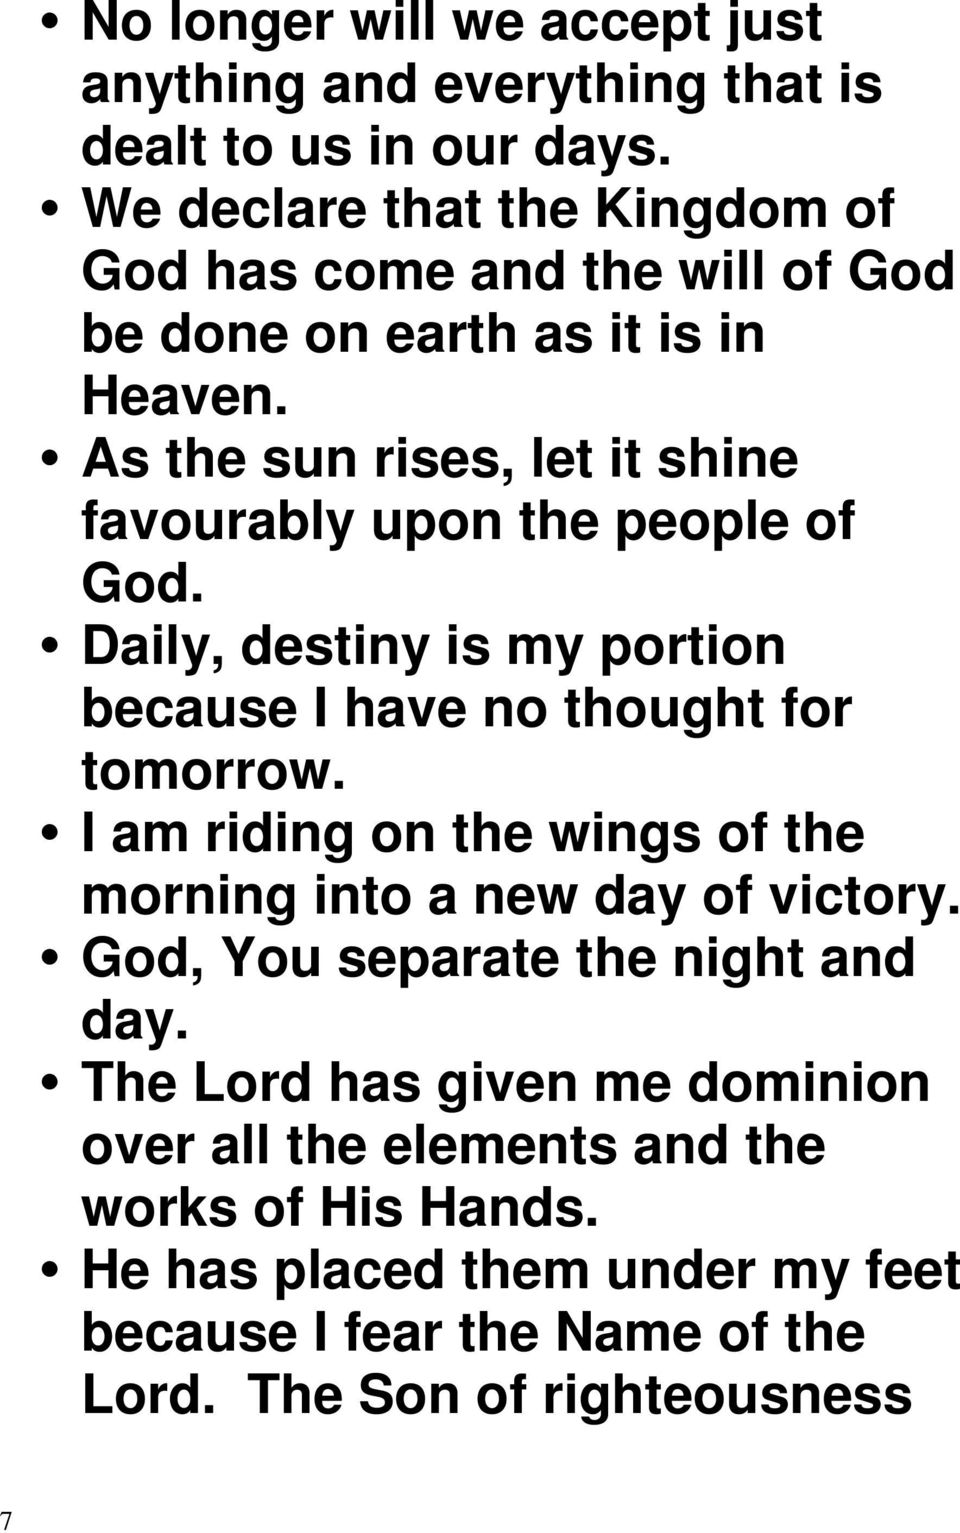 As the sun rises, let it shine favourably upon the people of God. Daily, destiny is my portion because I have no thought for tomorrow.